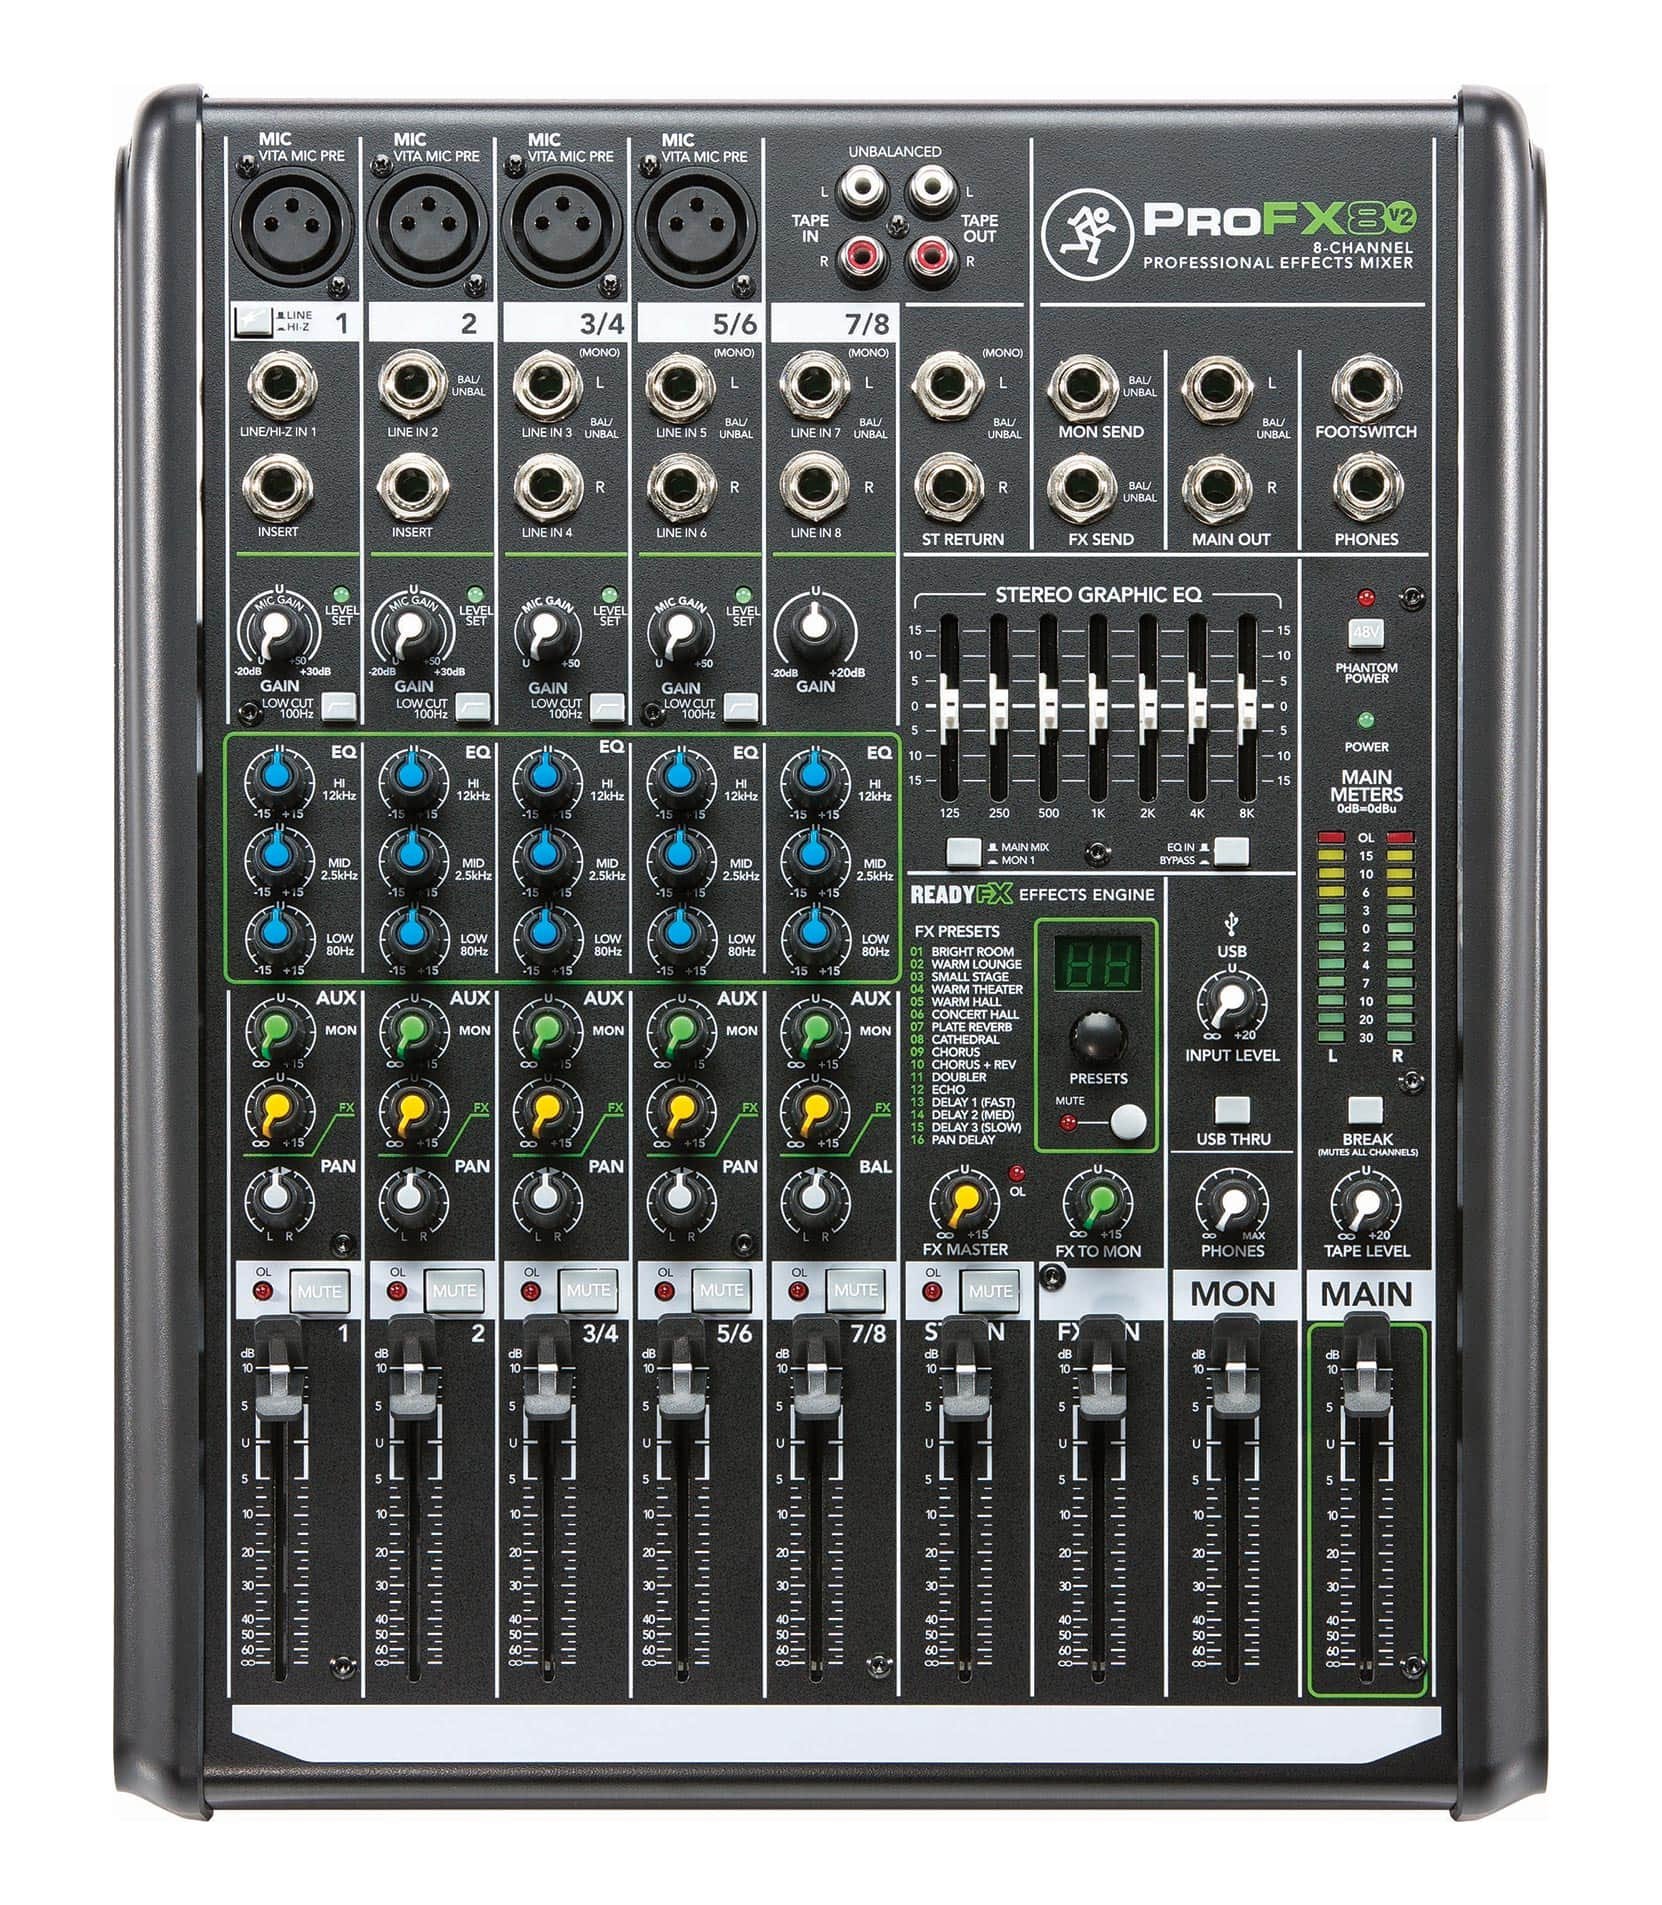 ProFX8v2 UK 8 channel Professional Effects Mixer